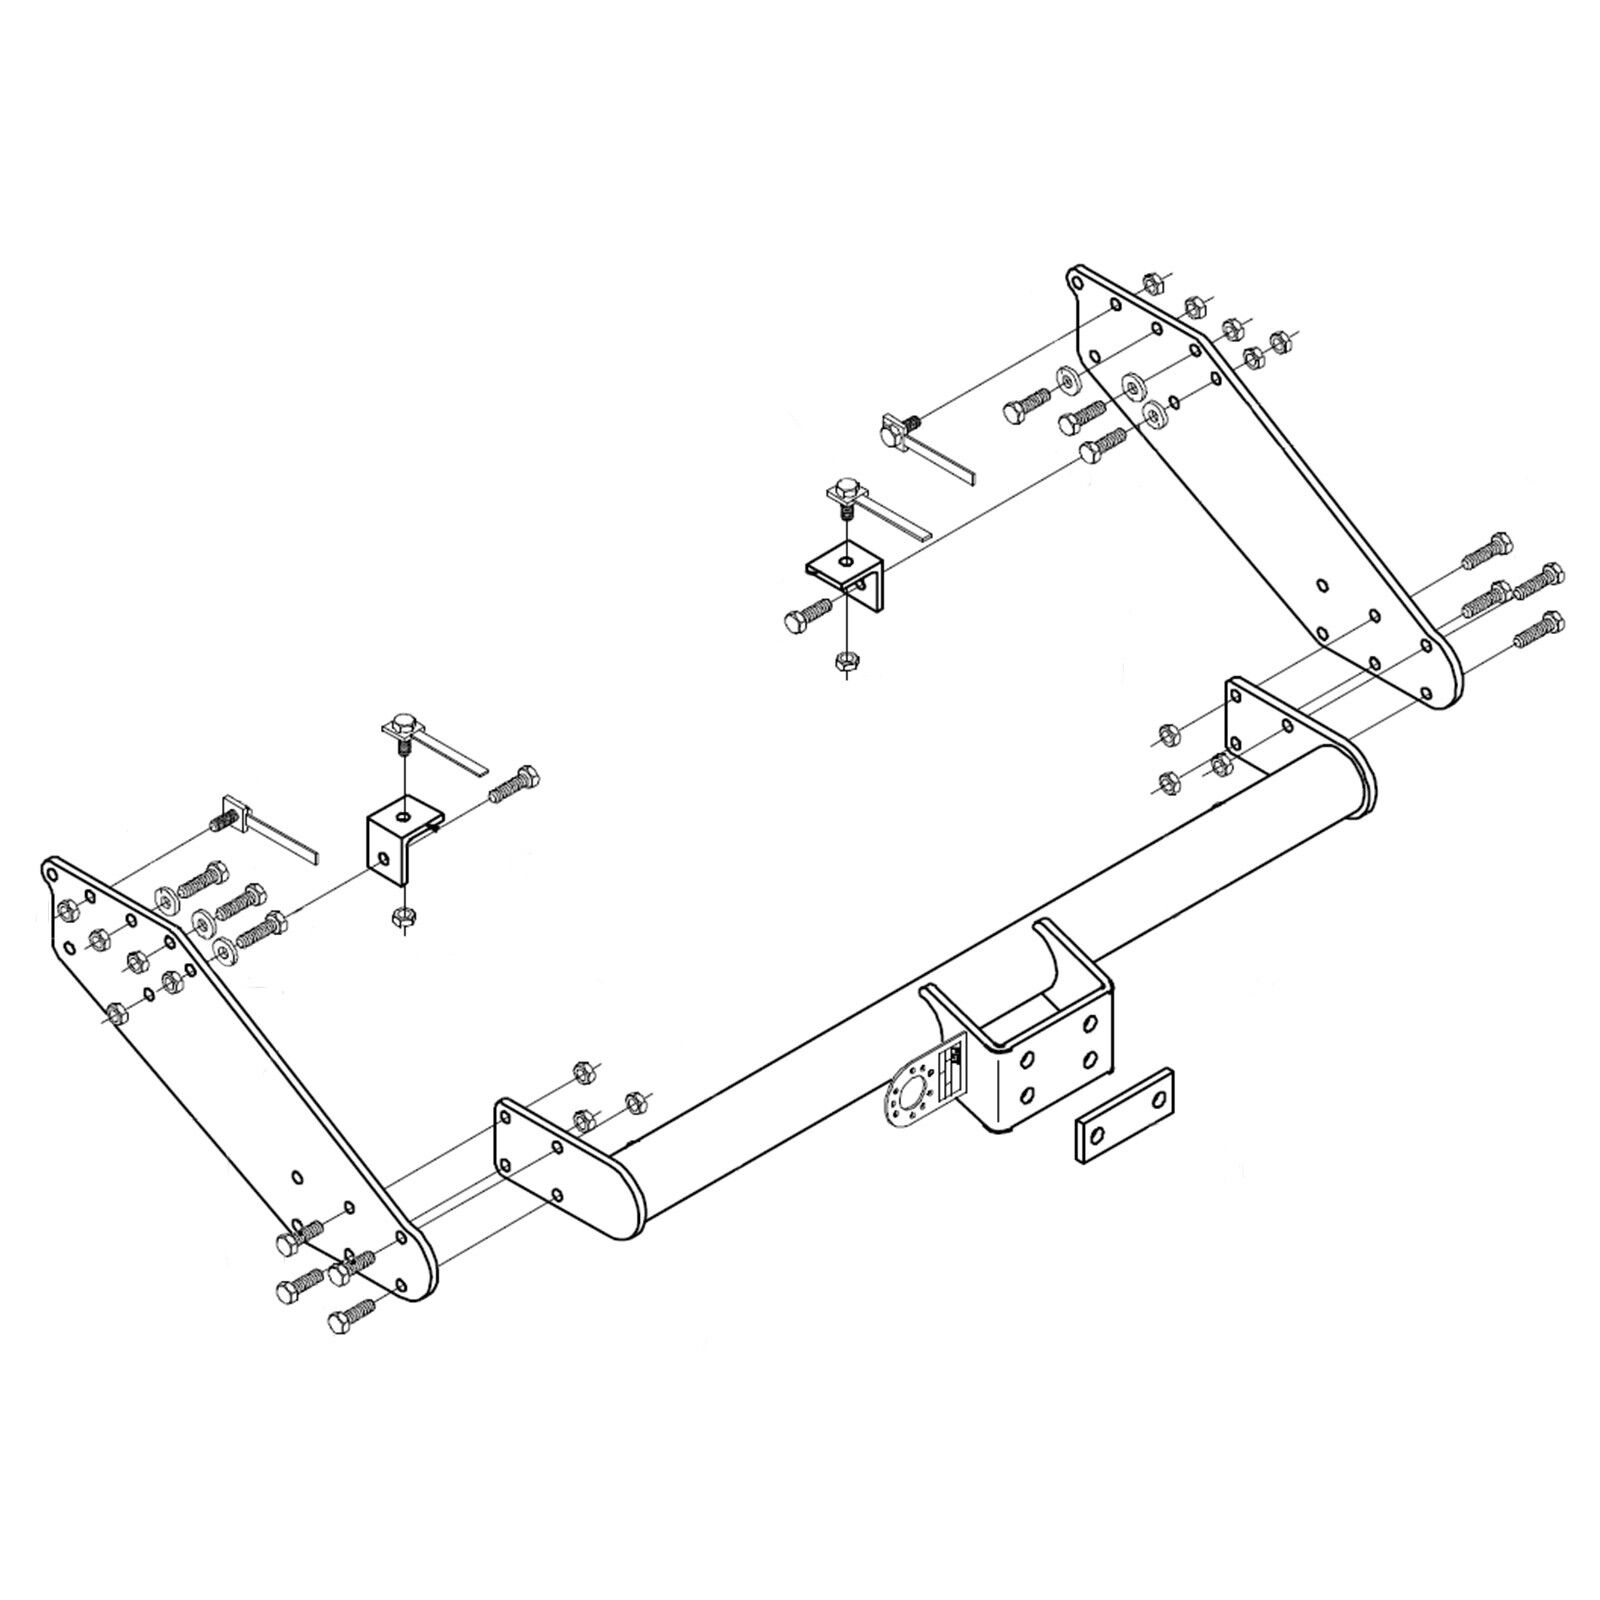 hight resolution of details about towbar for mitsubishi l200 long bed pickup 2009 2015 flange tow bar